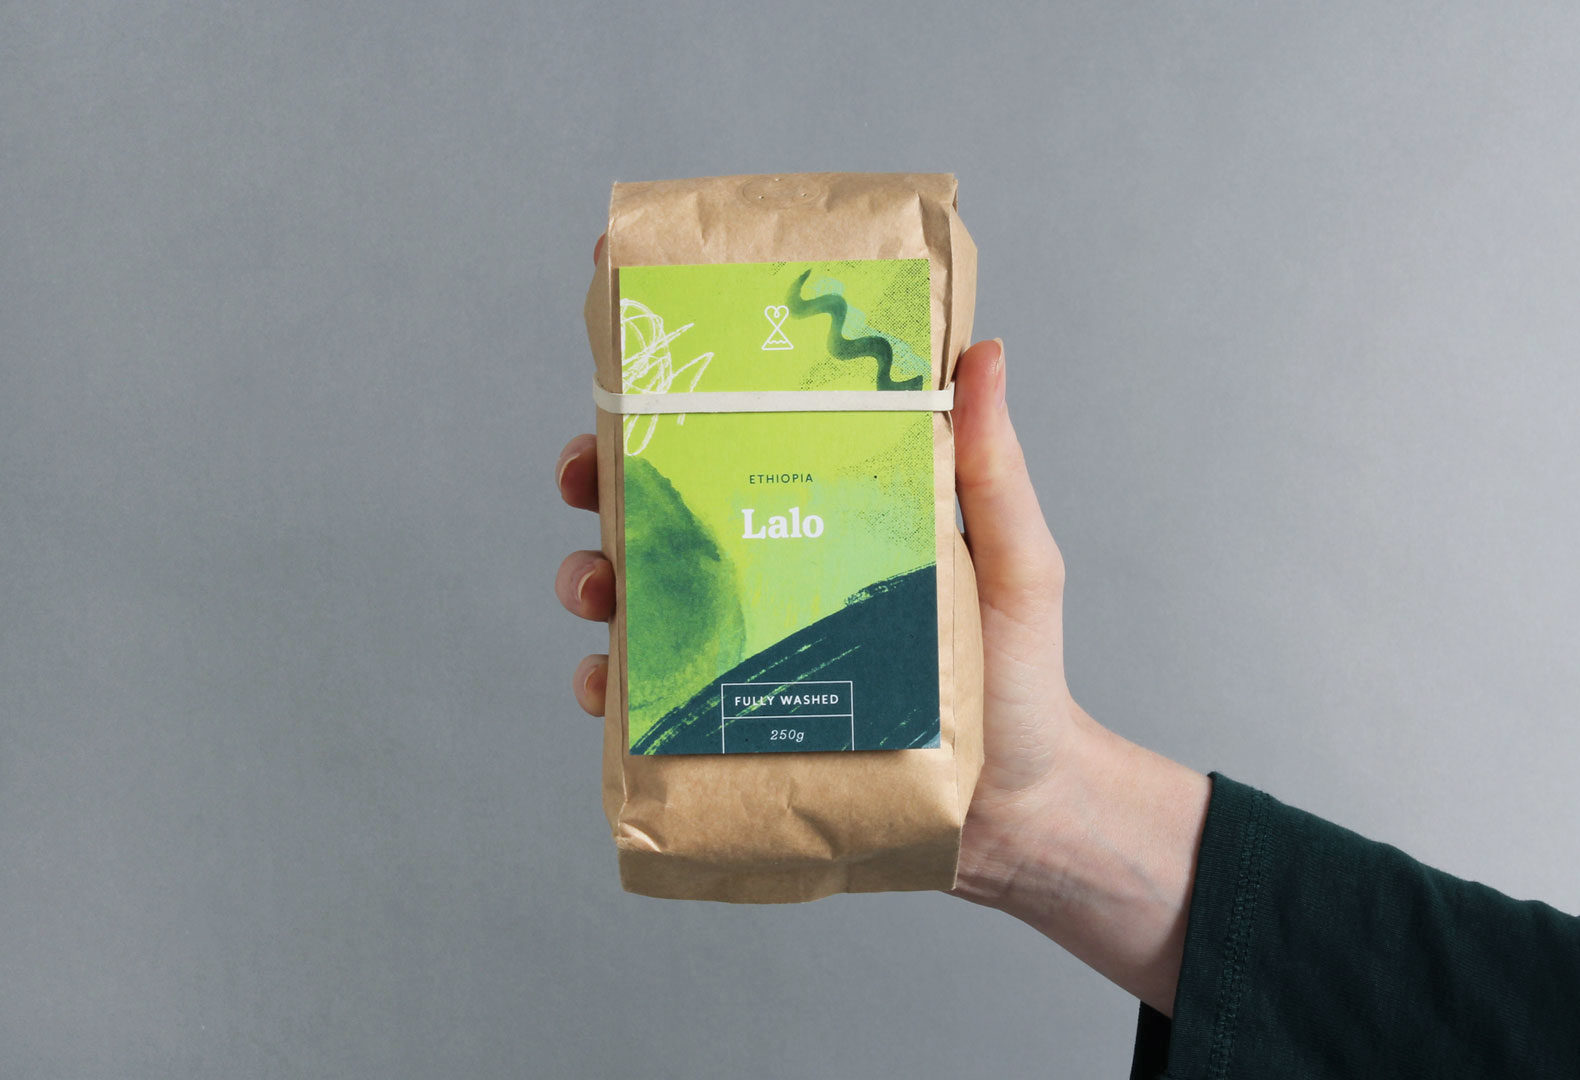 Passion Fruit branding design system used to label a pack of coffee beans.